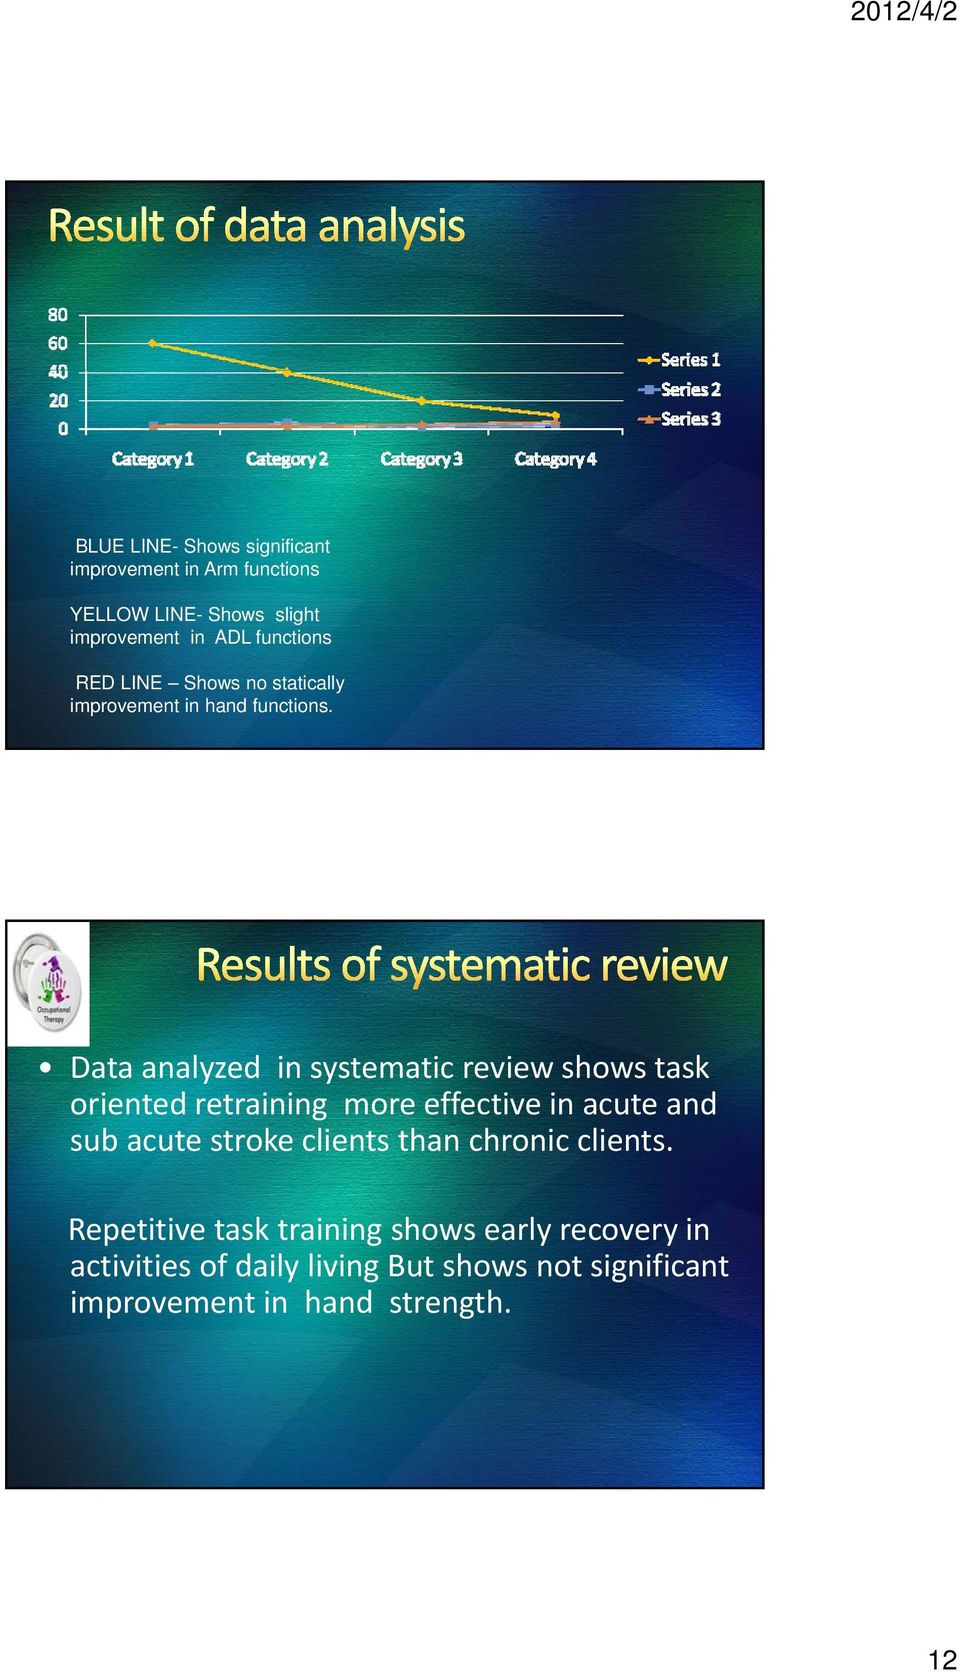 Data analyzed in systematic review shows task orientedretraining retraining more effective in acute and sub acute